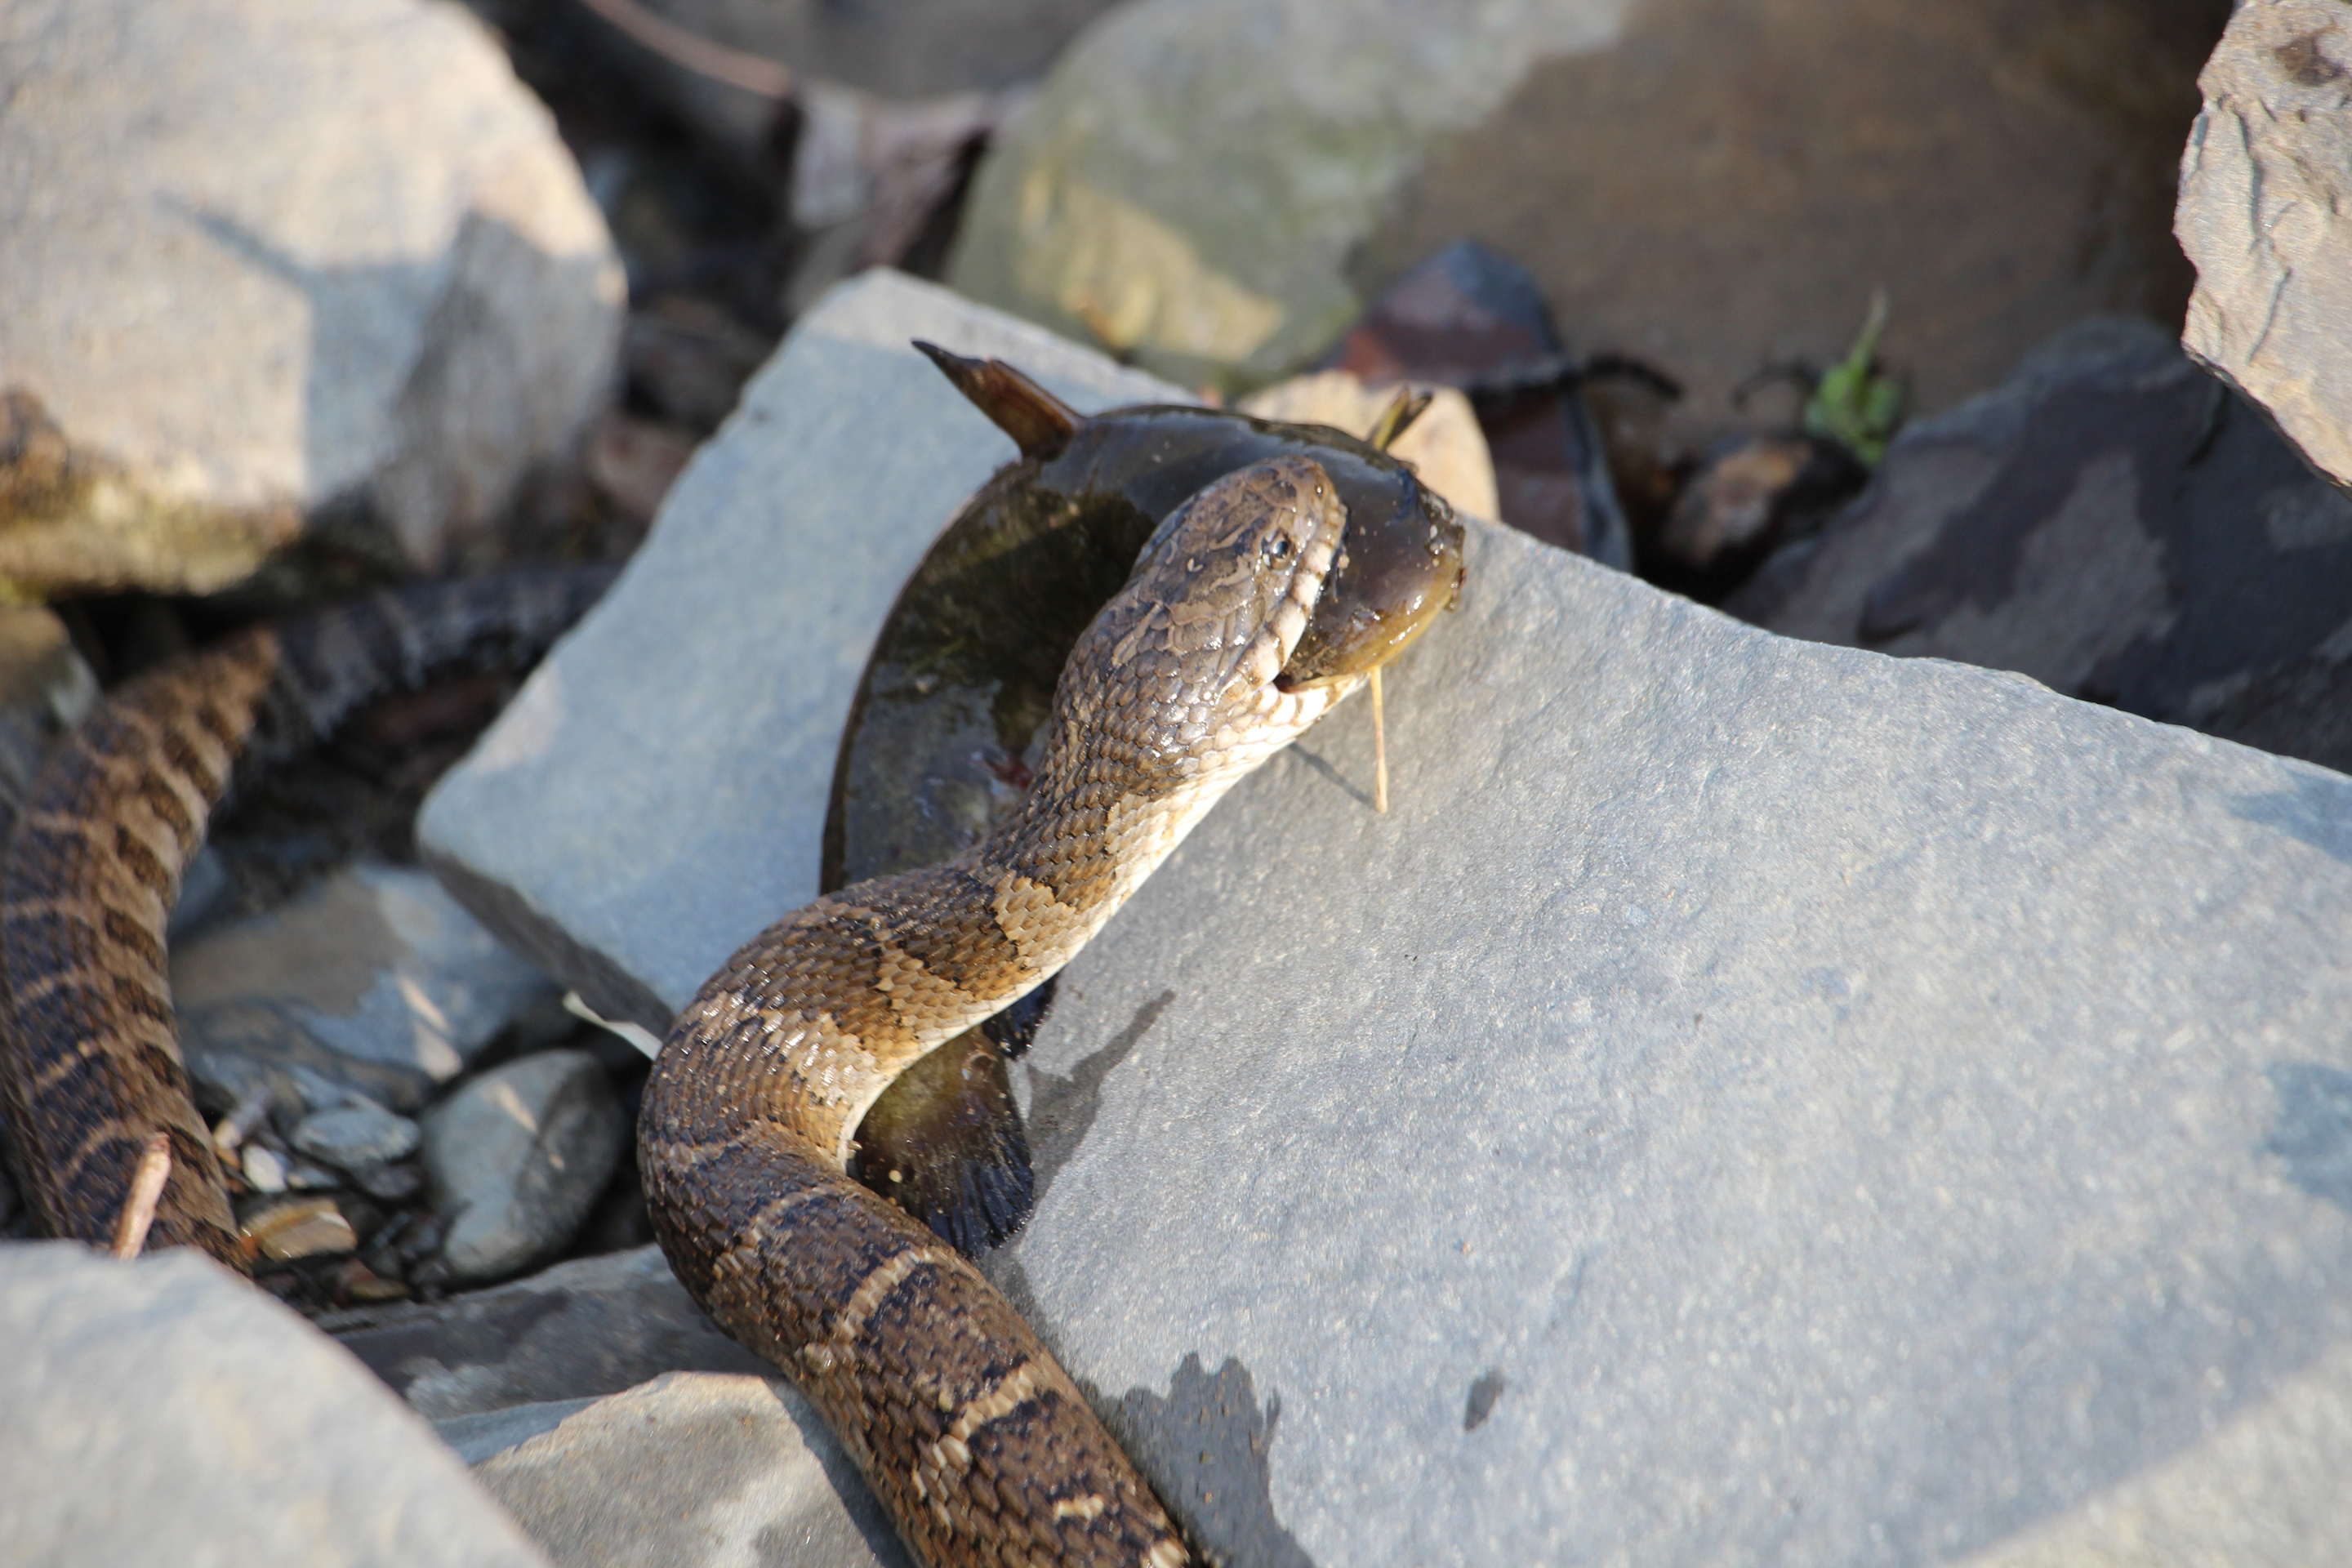 The Keuka Lake Snake